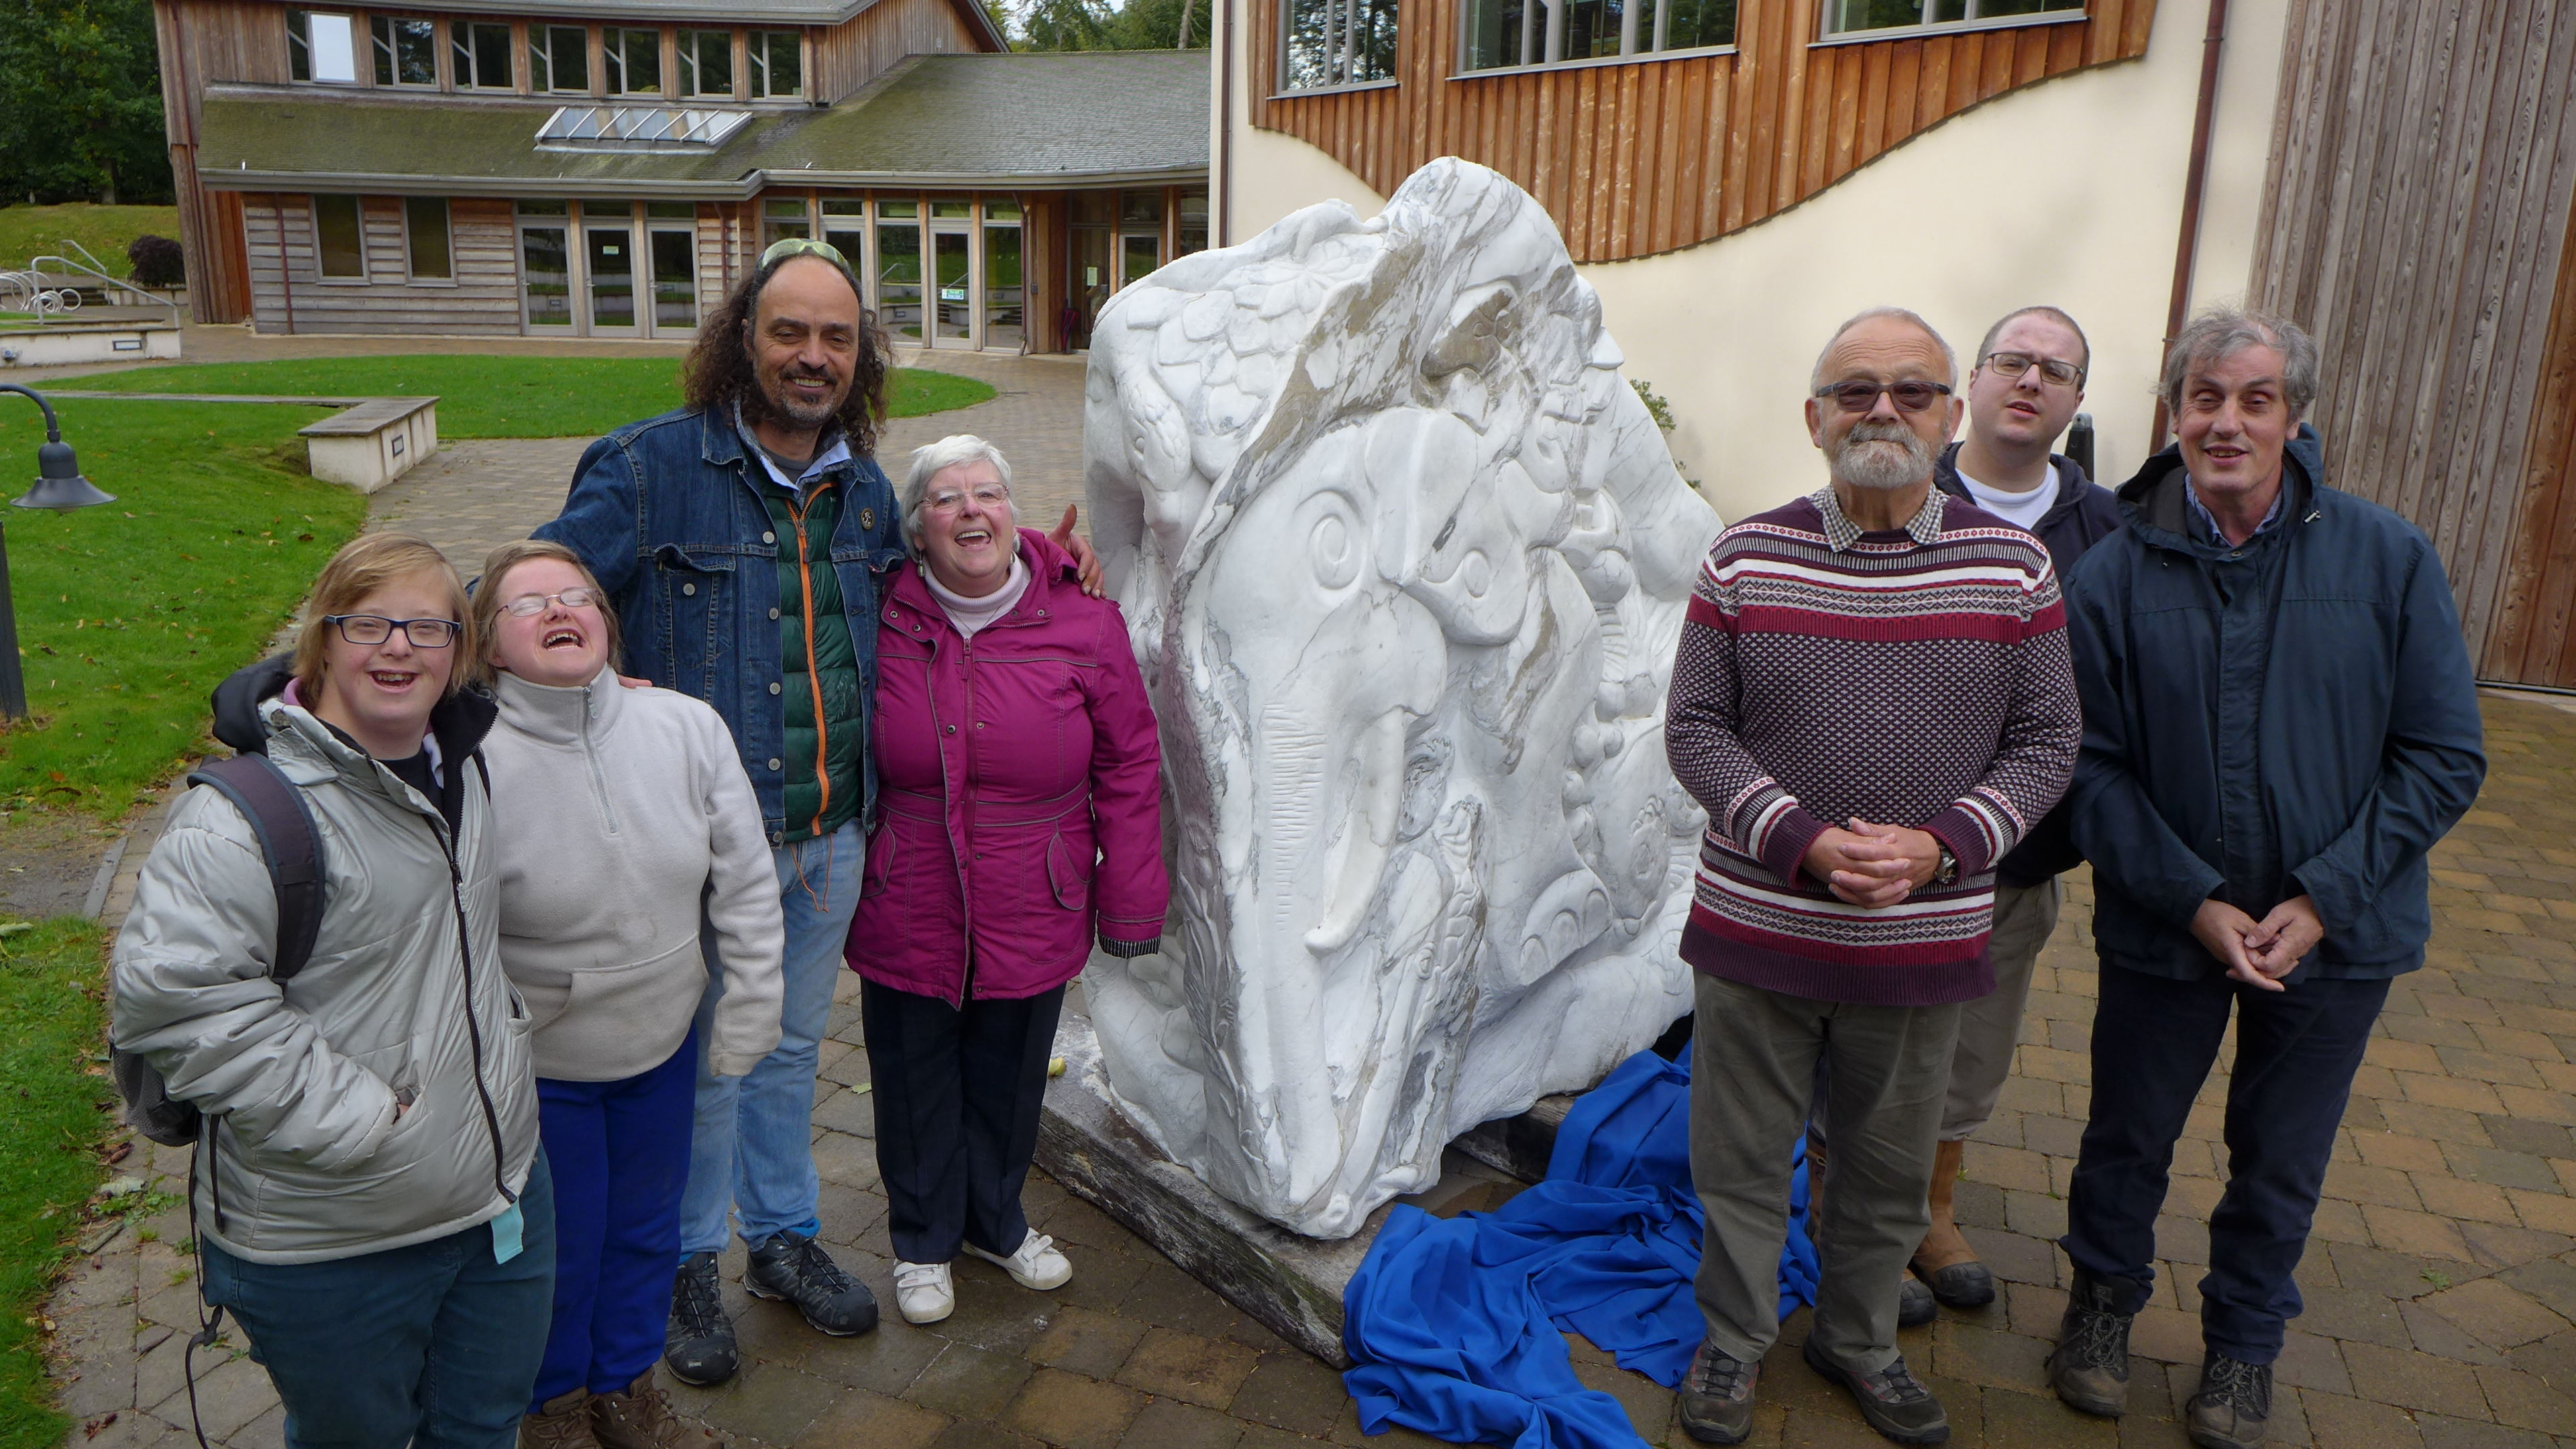 Newton Dee celebrated the completion of its latest community sculpture. From left to right: Stephanie Salvsen, Katy Fusco, sculptor Albertino Costa, Linda Esson, Spencer Barthorpe, David Page and Mark Hughes